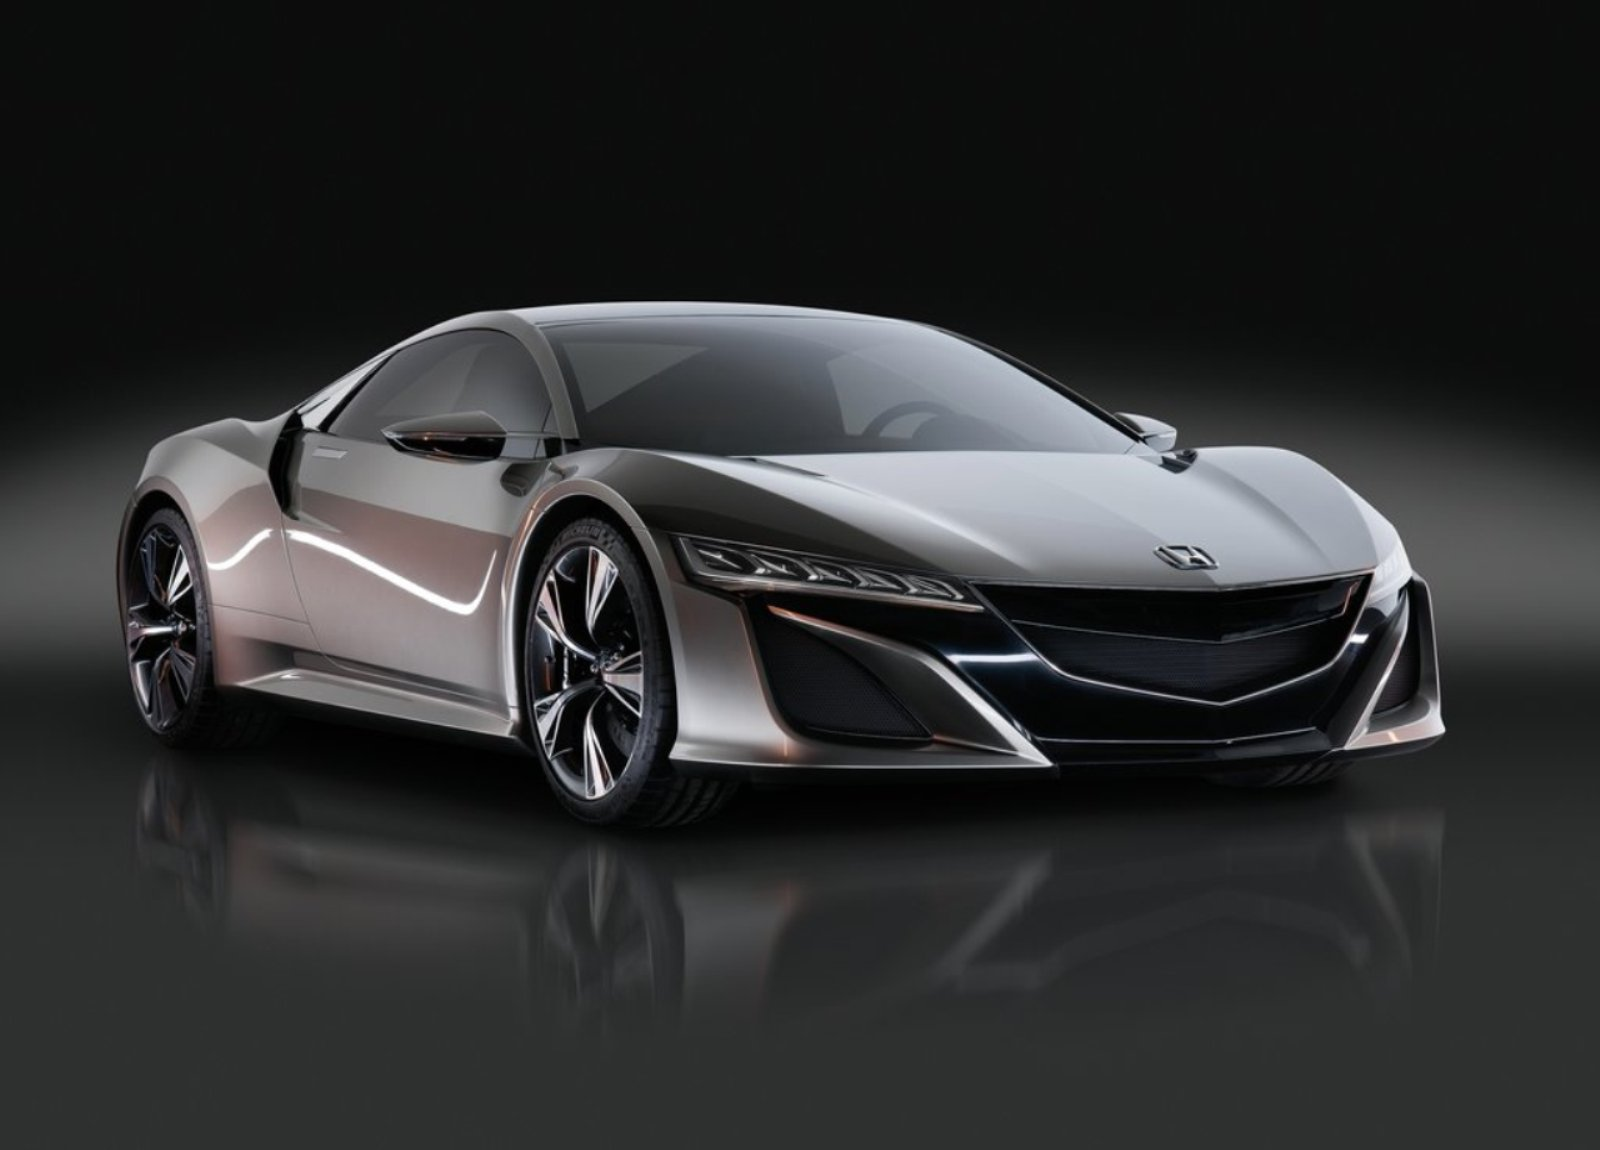 Acura NSX Debutes Front Angle Concept Car Geneva Motor Acura NSX Debutes Front Angle Concept Car Geneva Motor Wallpaper Backgrounds